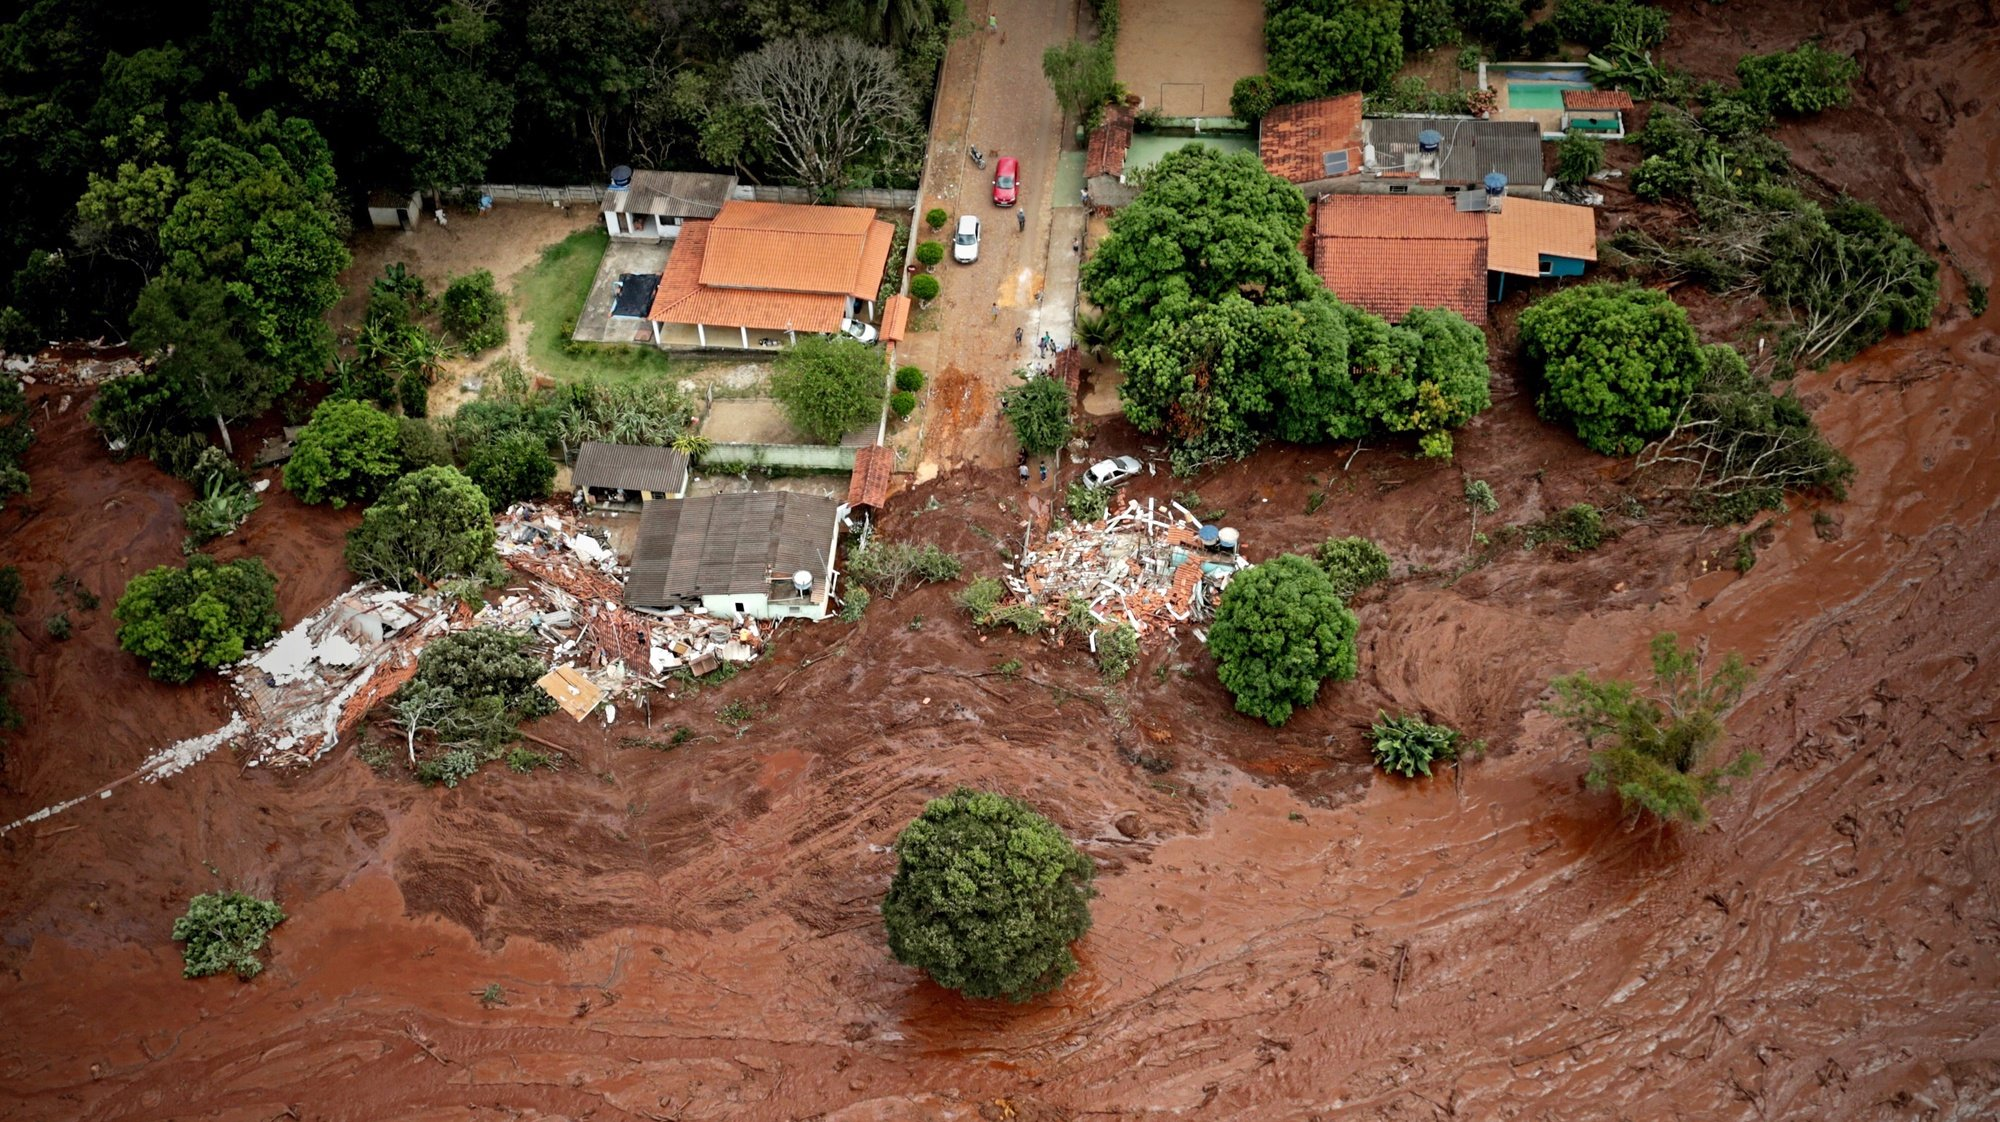 epa08986842 (FILE) An a erial view o  mud and waste from the disaster caused by dam spill in Brumadinho, Minas Gerais, Brazil, 26 January 2019 (reissued 04 February 2021). Brazilian mining giant Vale SA reached a settlement agreement with the Brazilian state for the deadly Brumadinho dam disaster in January 2019, which killed 270 people. The iron ore producer will pay 7.03 billion USD, Vale said 04 February 2021.  EPA/Antonio Lacerda